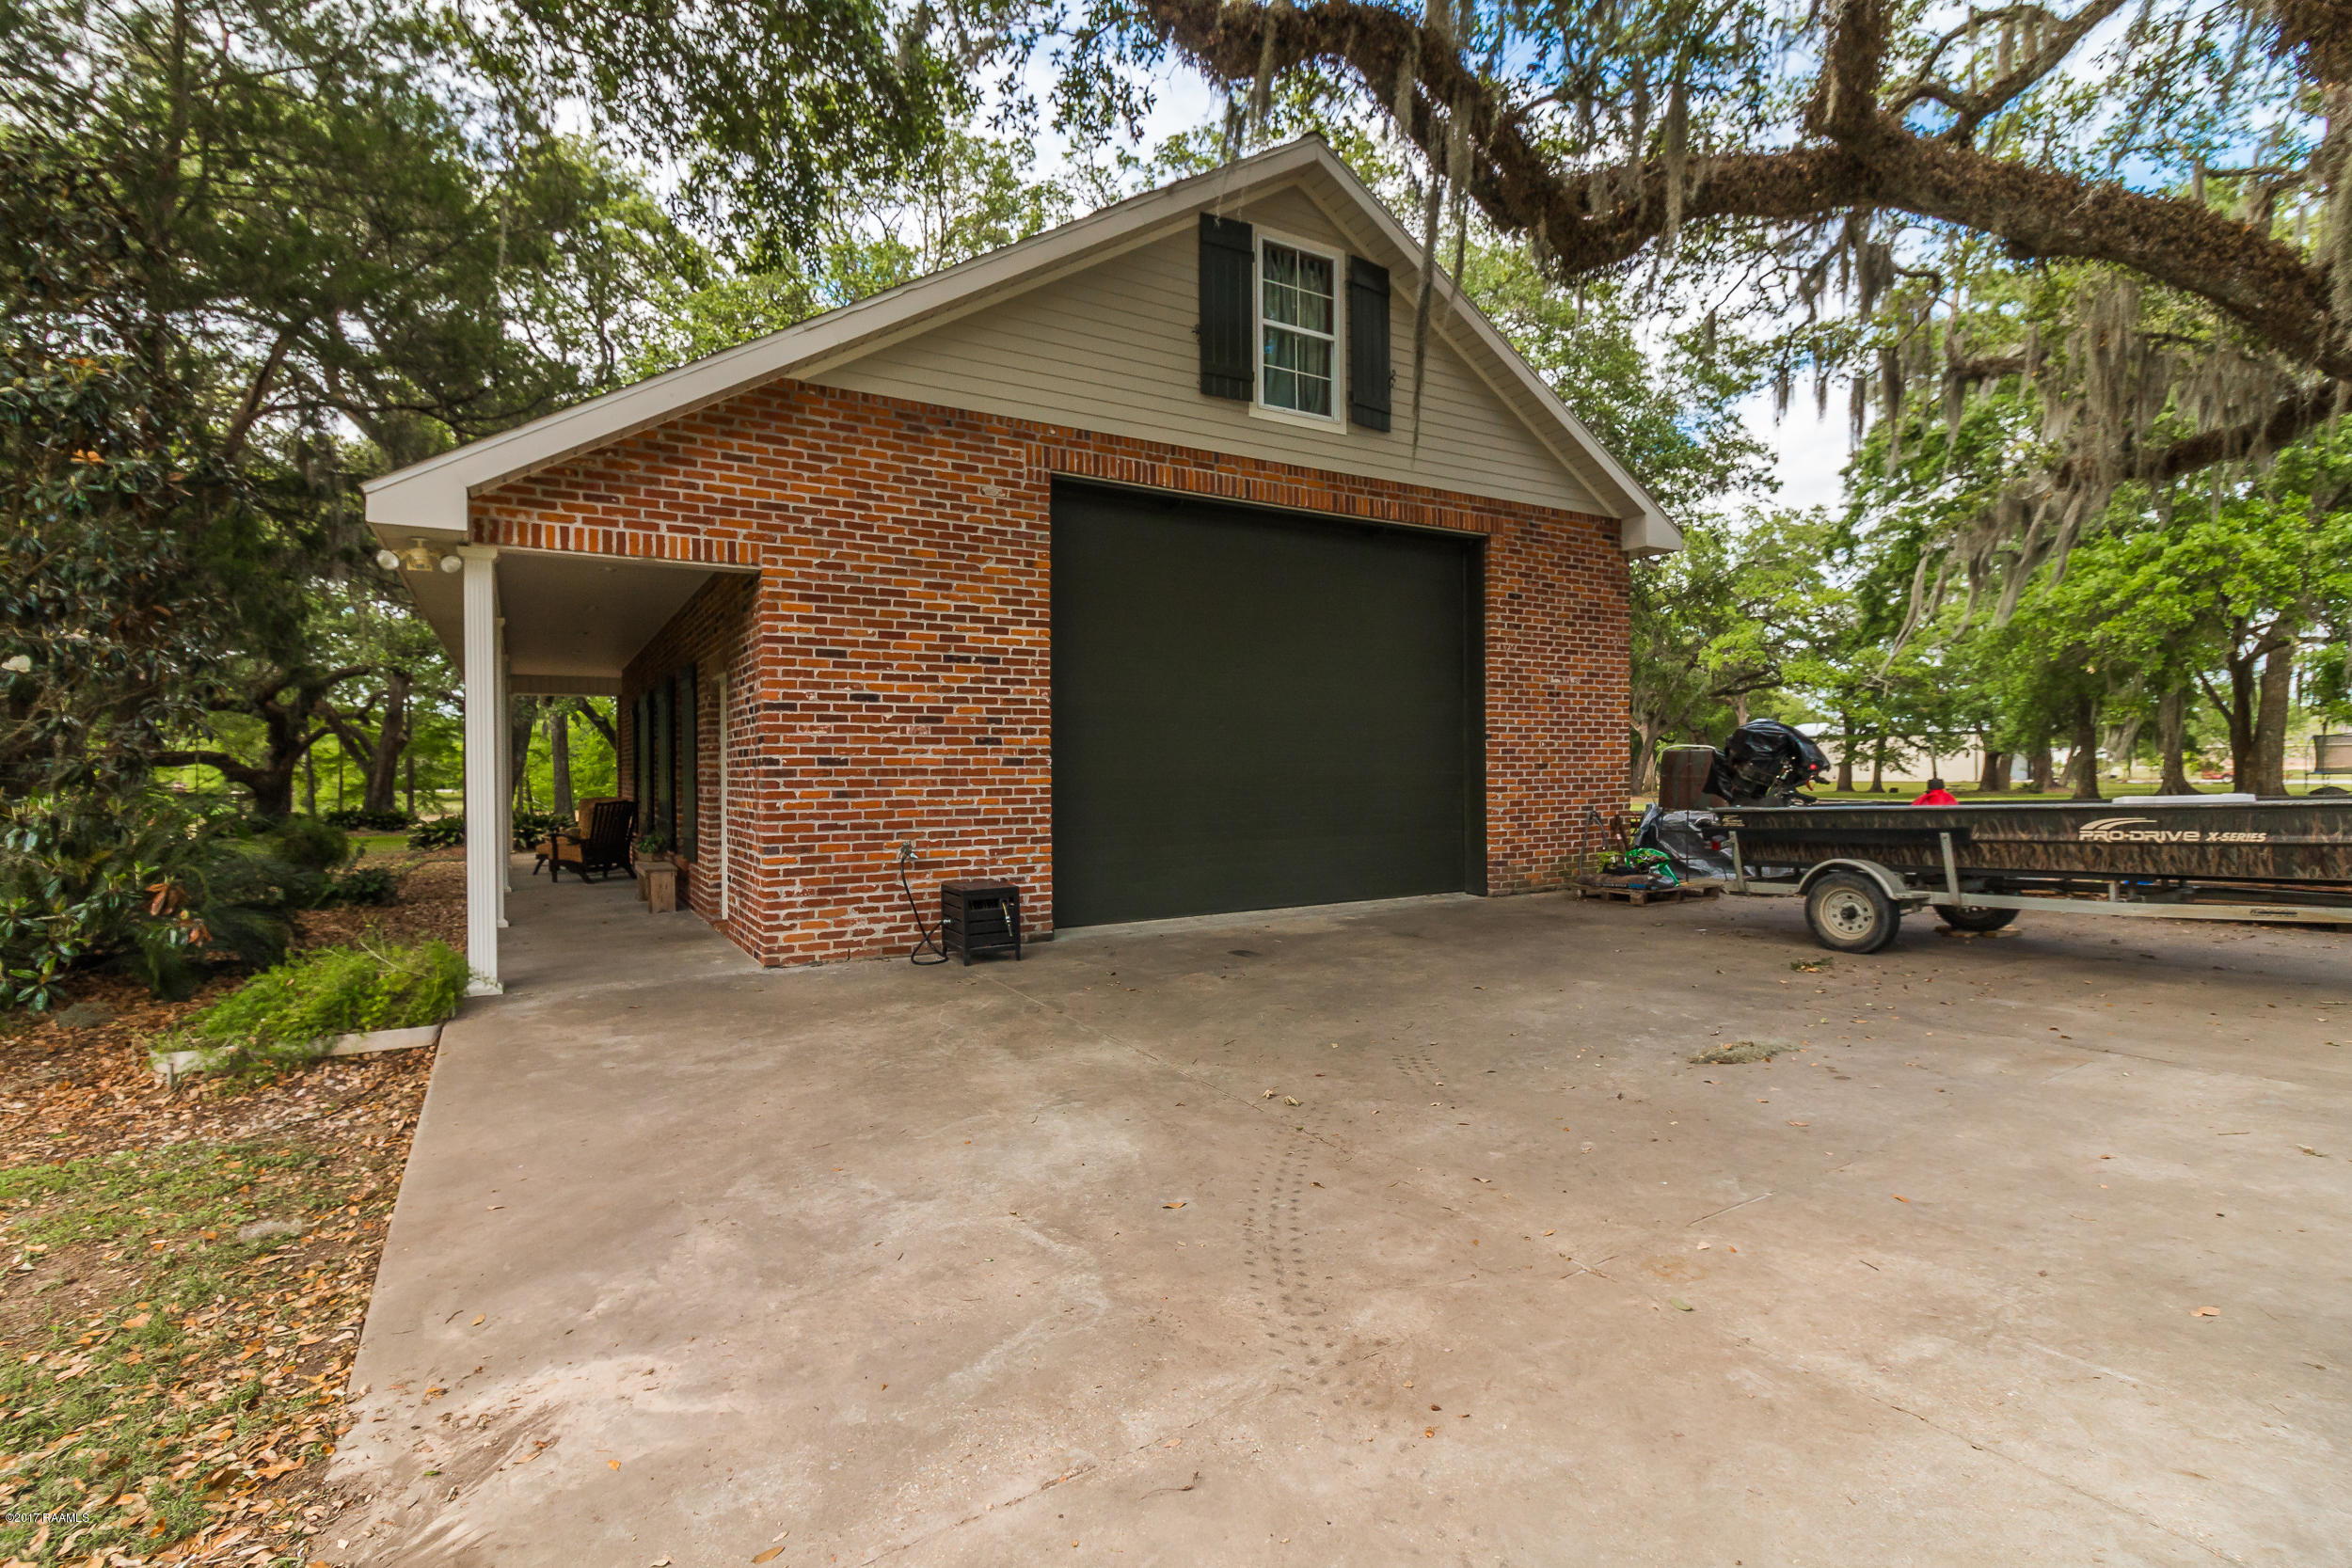 4550 Chitimacha Trail, Jeanerette, LA 70544 Photo #44